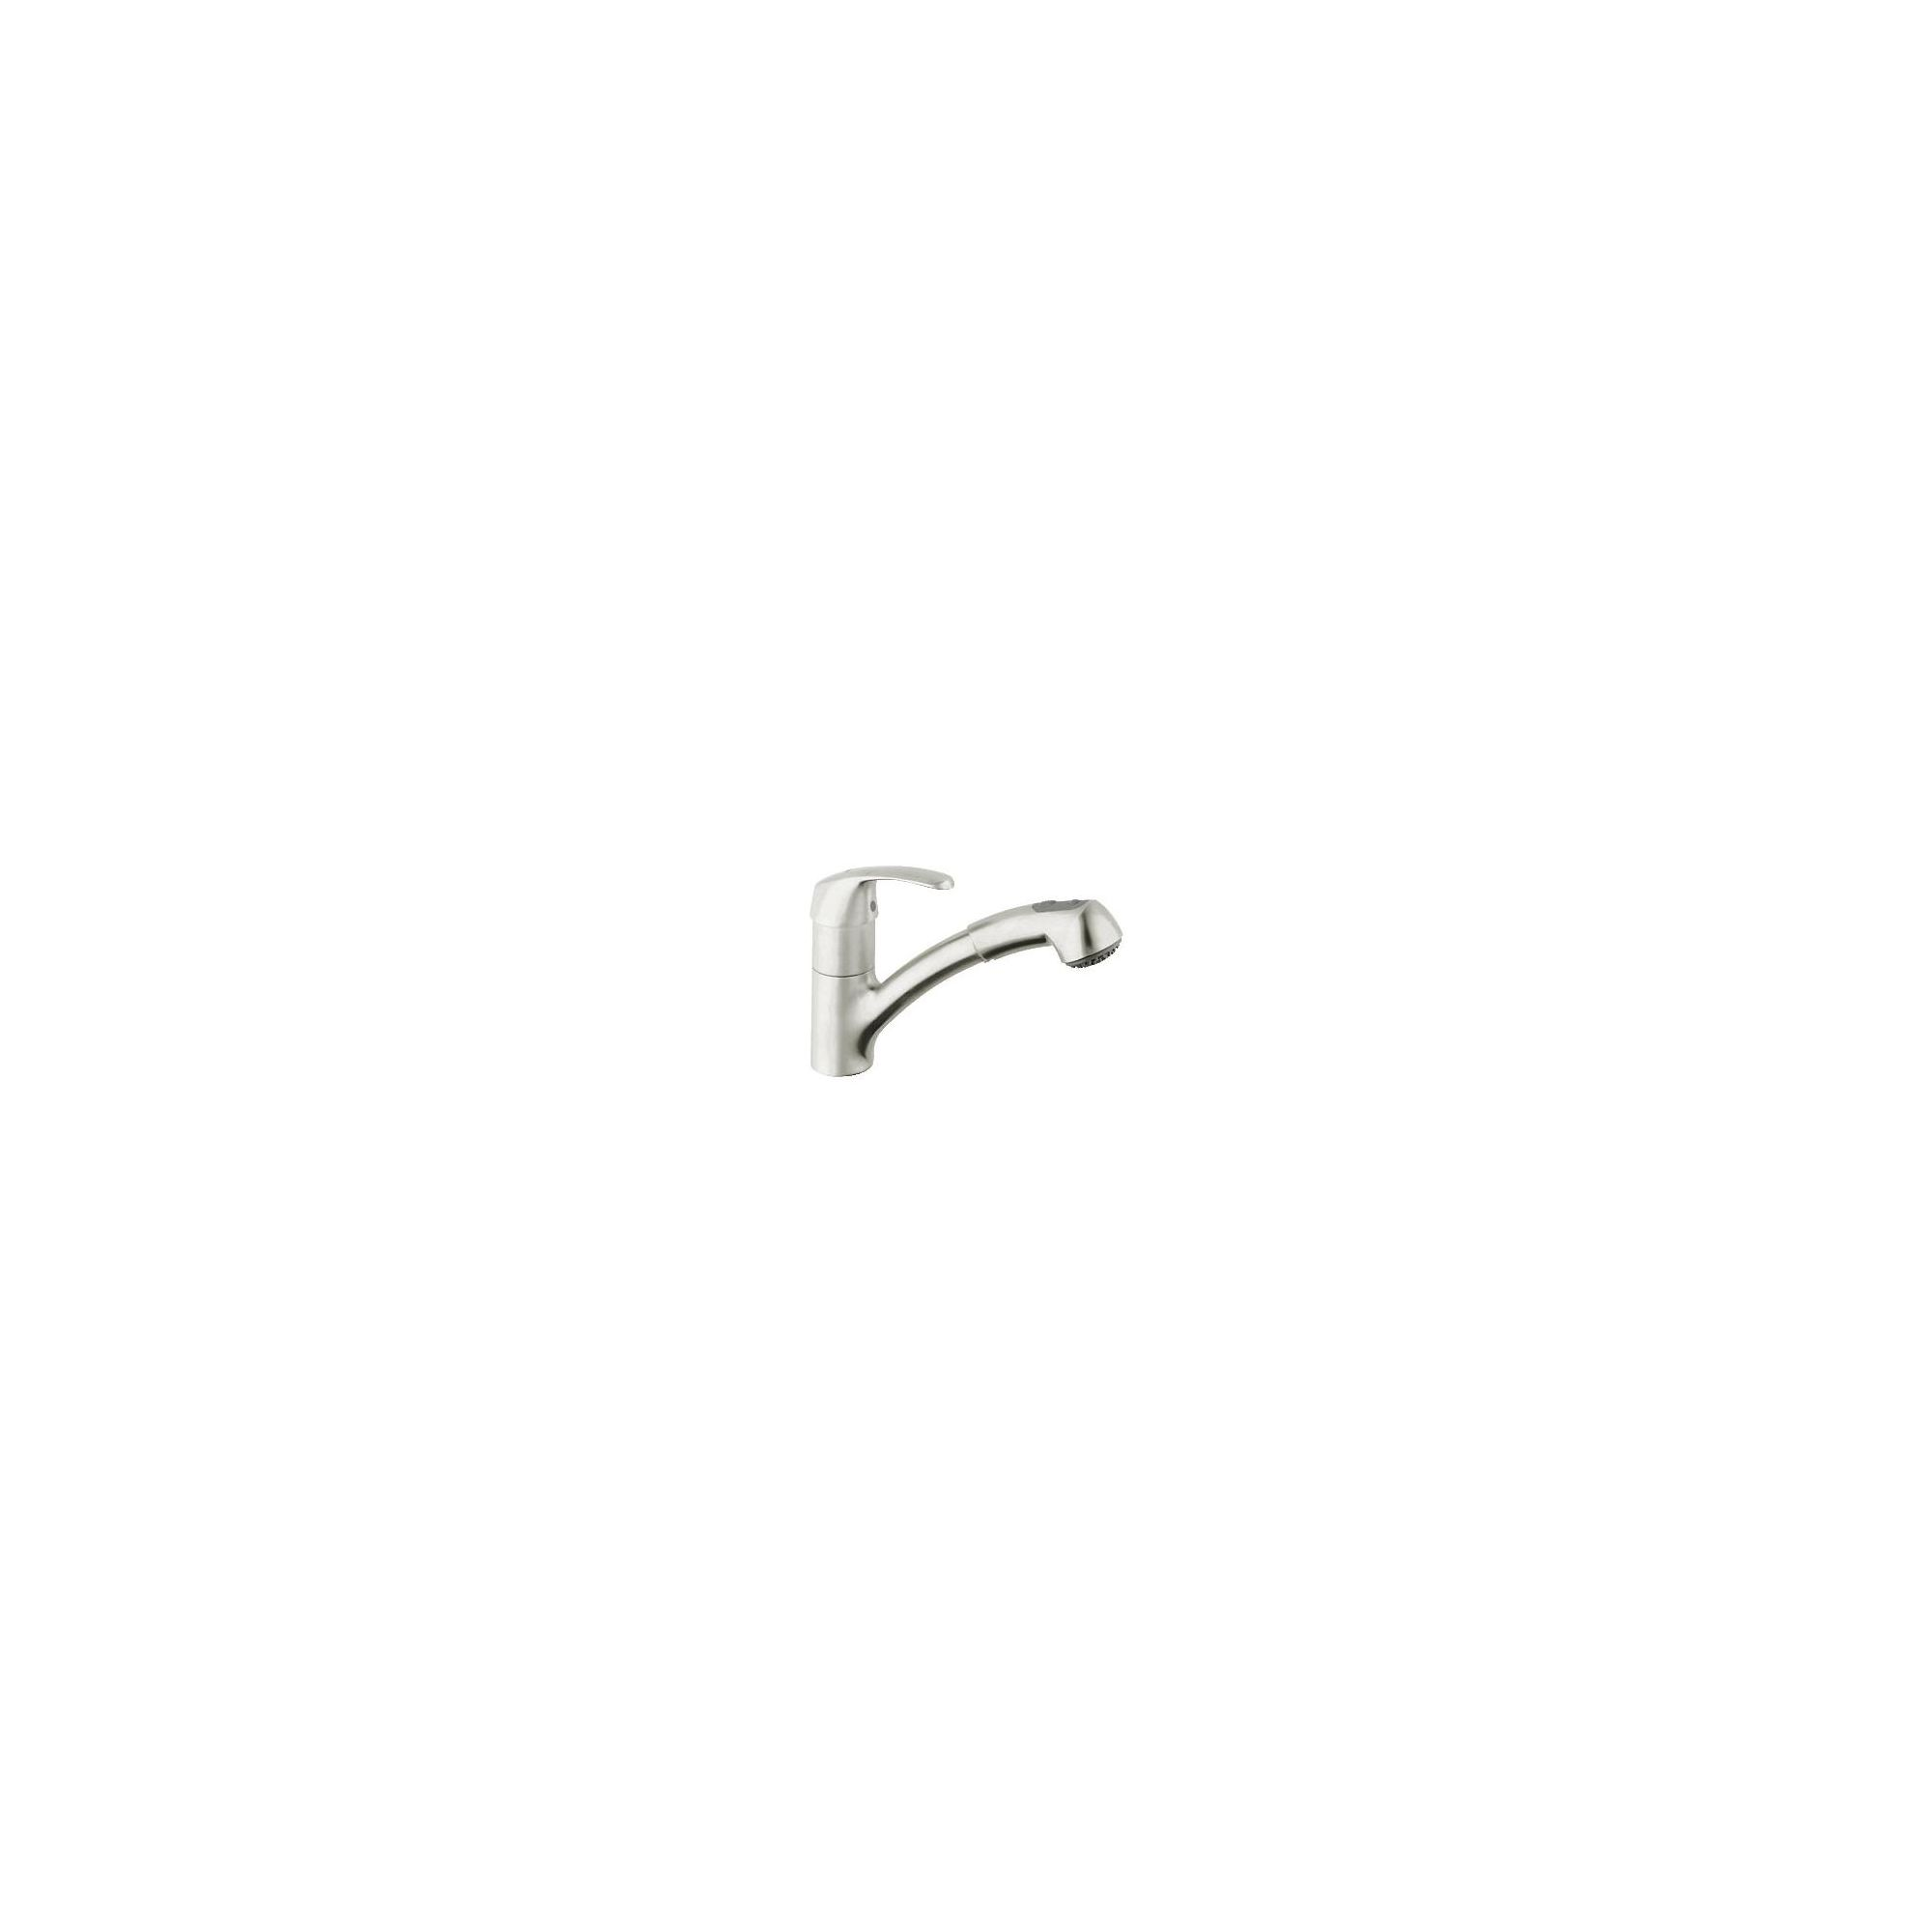 Grohe Alira Mono Sink Mixer Tap, Pull-Out Spray, Single Handle, RealSteel at Tesco Direct